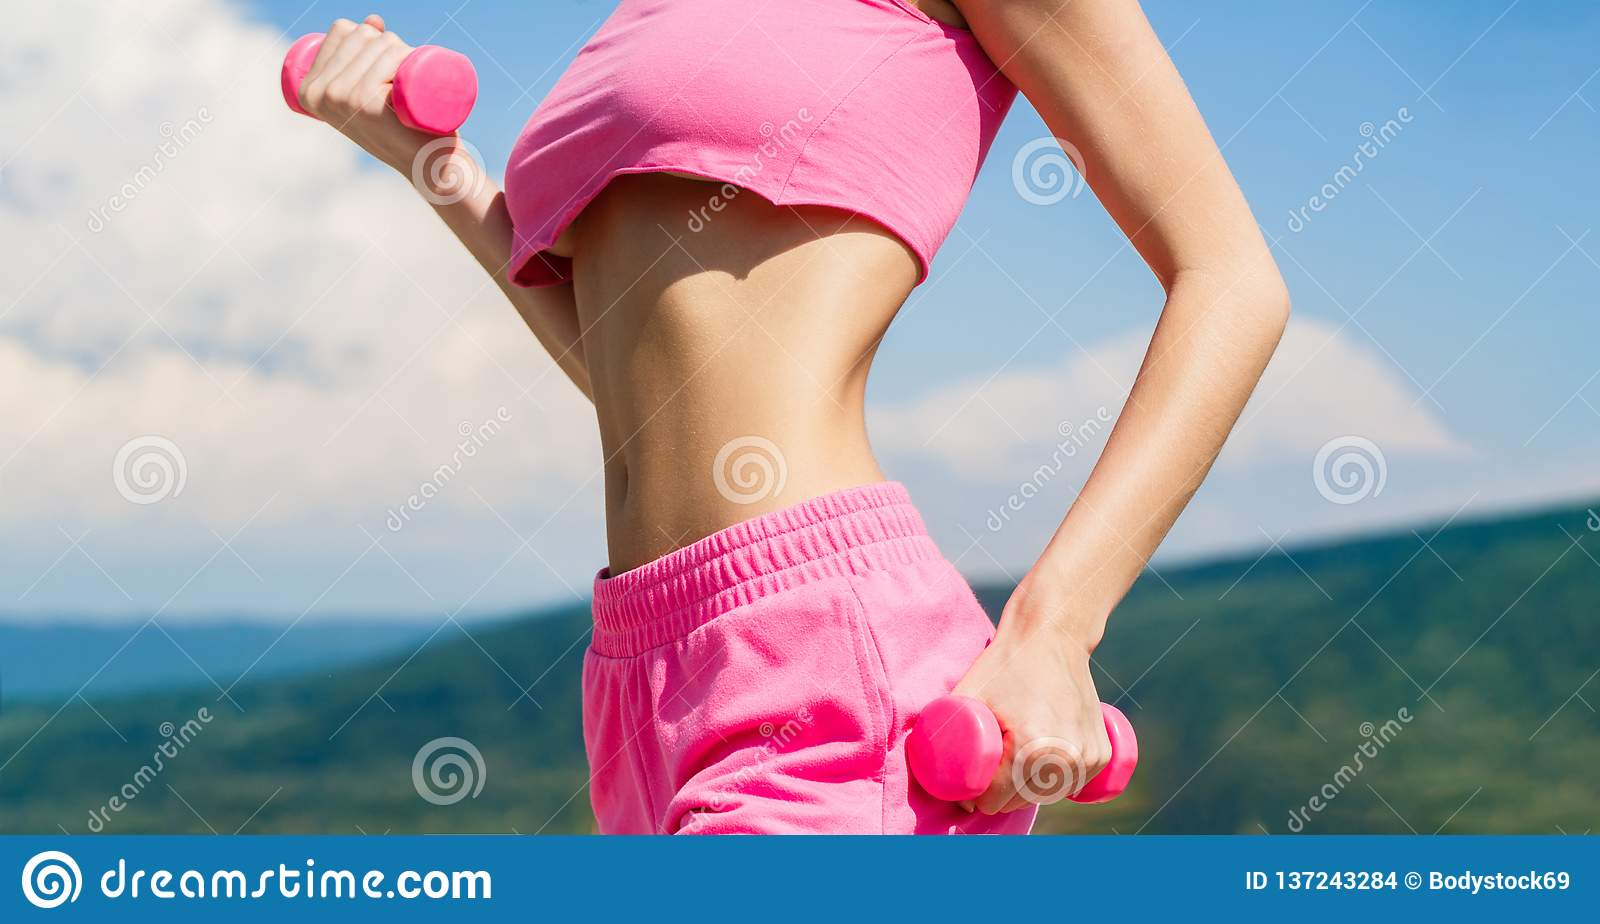 Fitness woman in training. Sporty woman does the exercises with dumbbells. Sports fitness girl, dumbbells. Woman